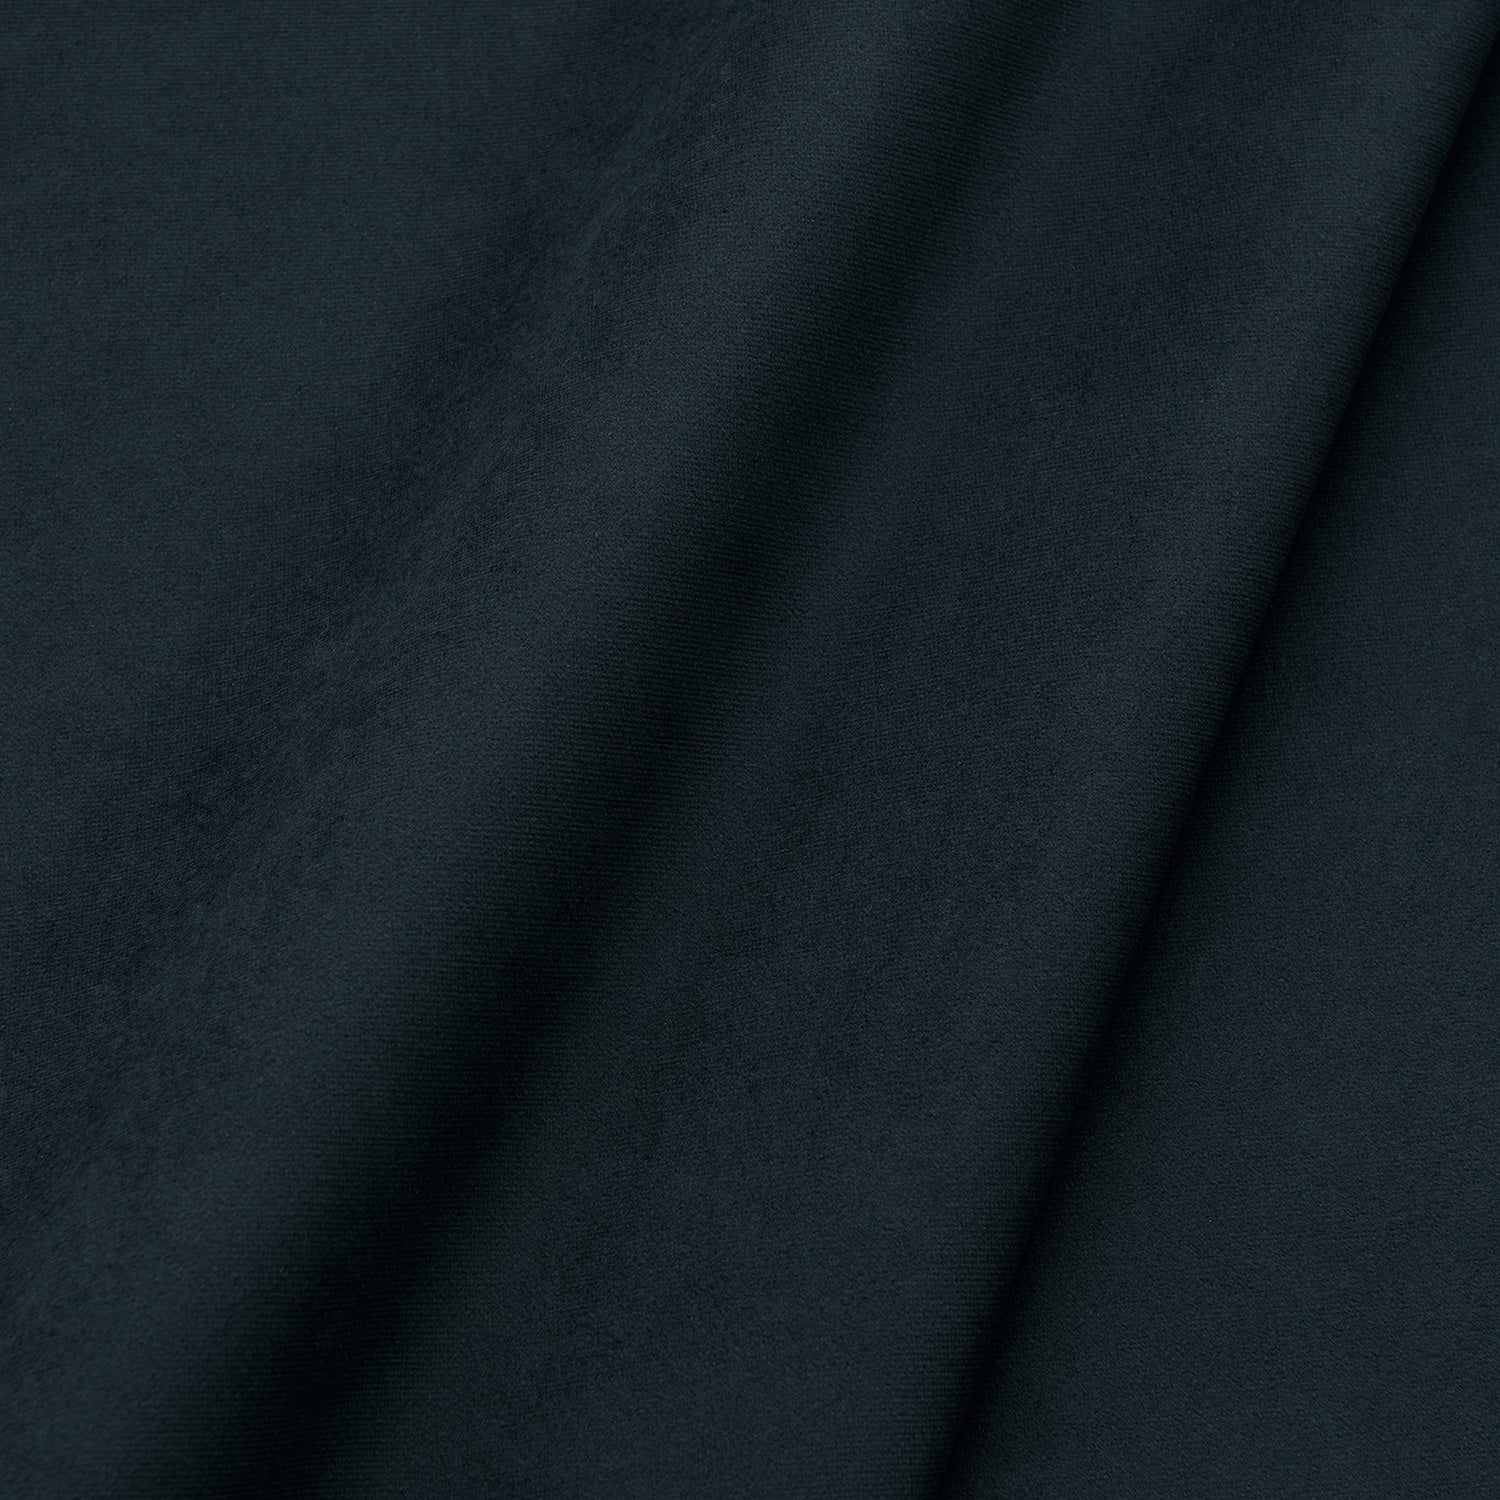 Fabric swatch of a plain stain resistant velvet upholstery fabric in a black colour